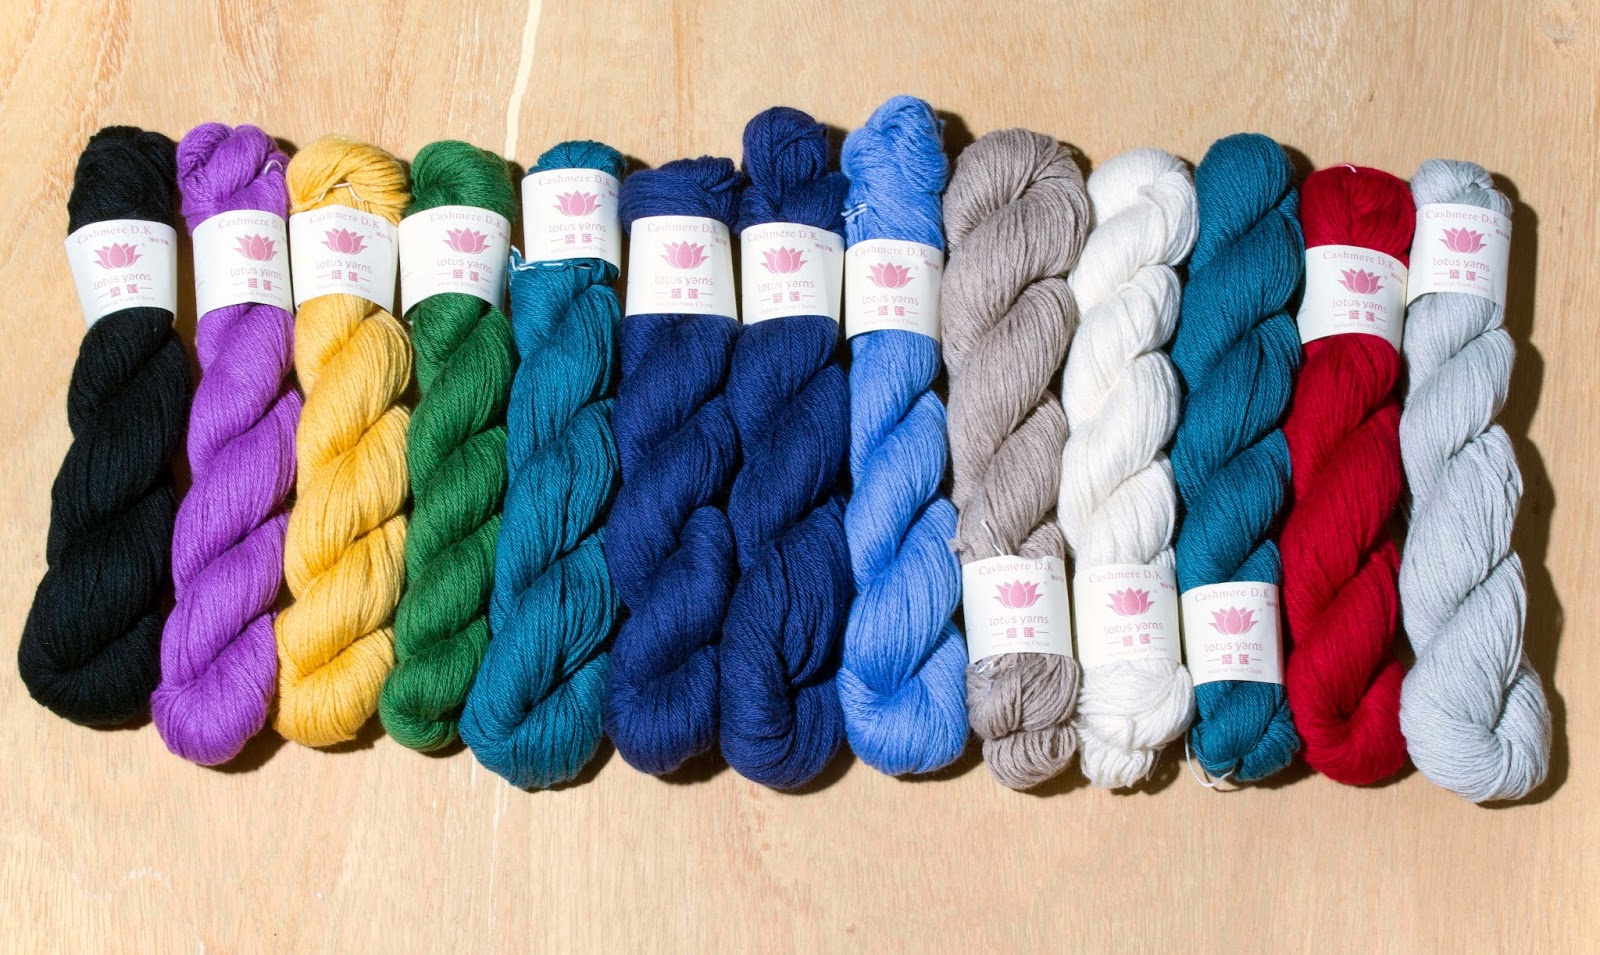 100%cashmere,yarn,wool,premiumyarn,china,knitting,fashion,handmade